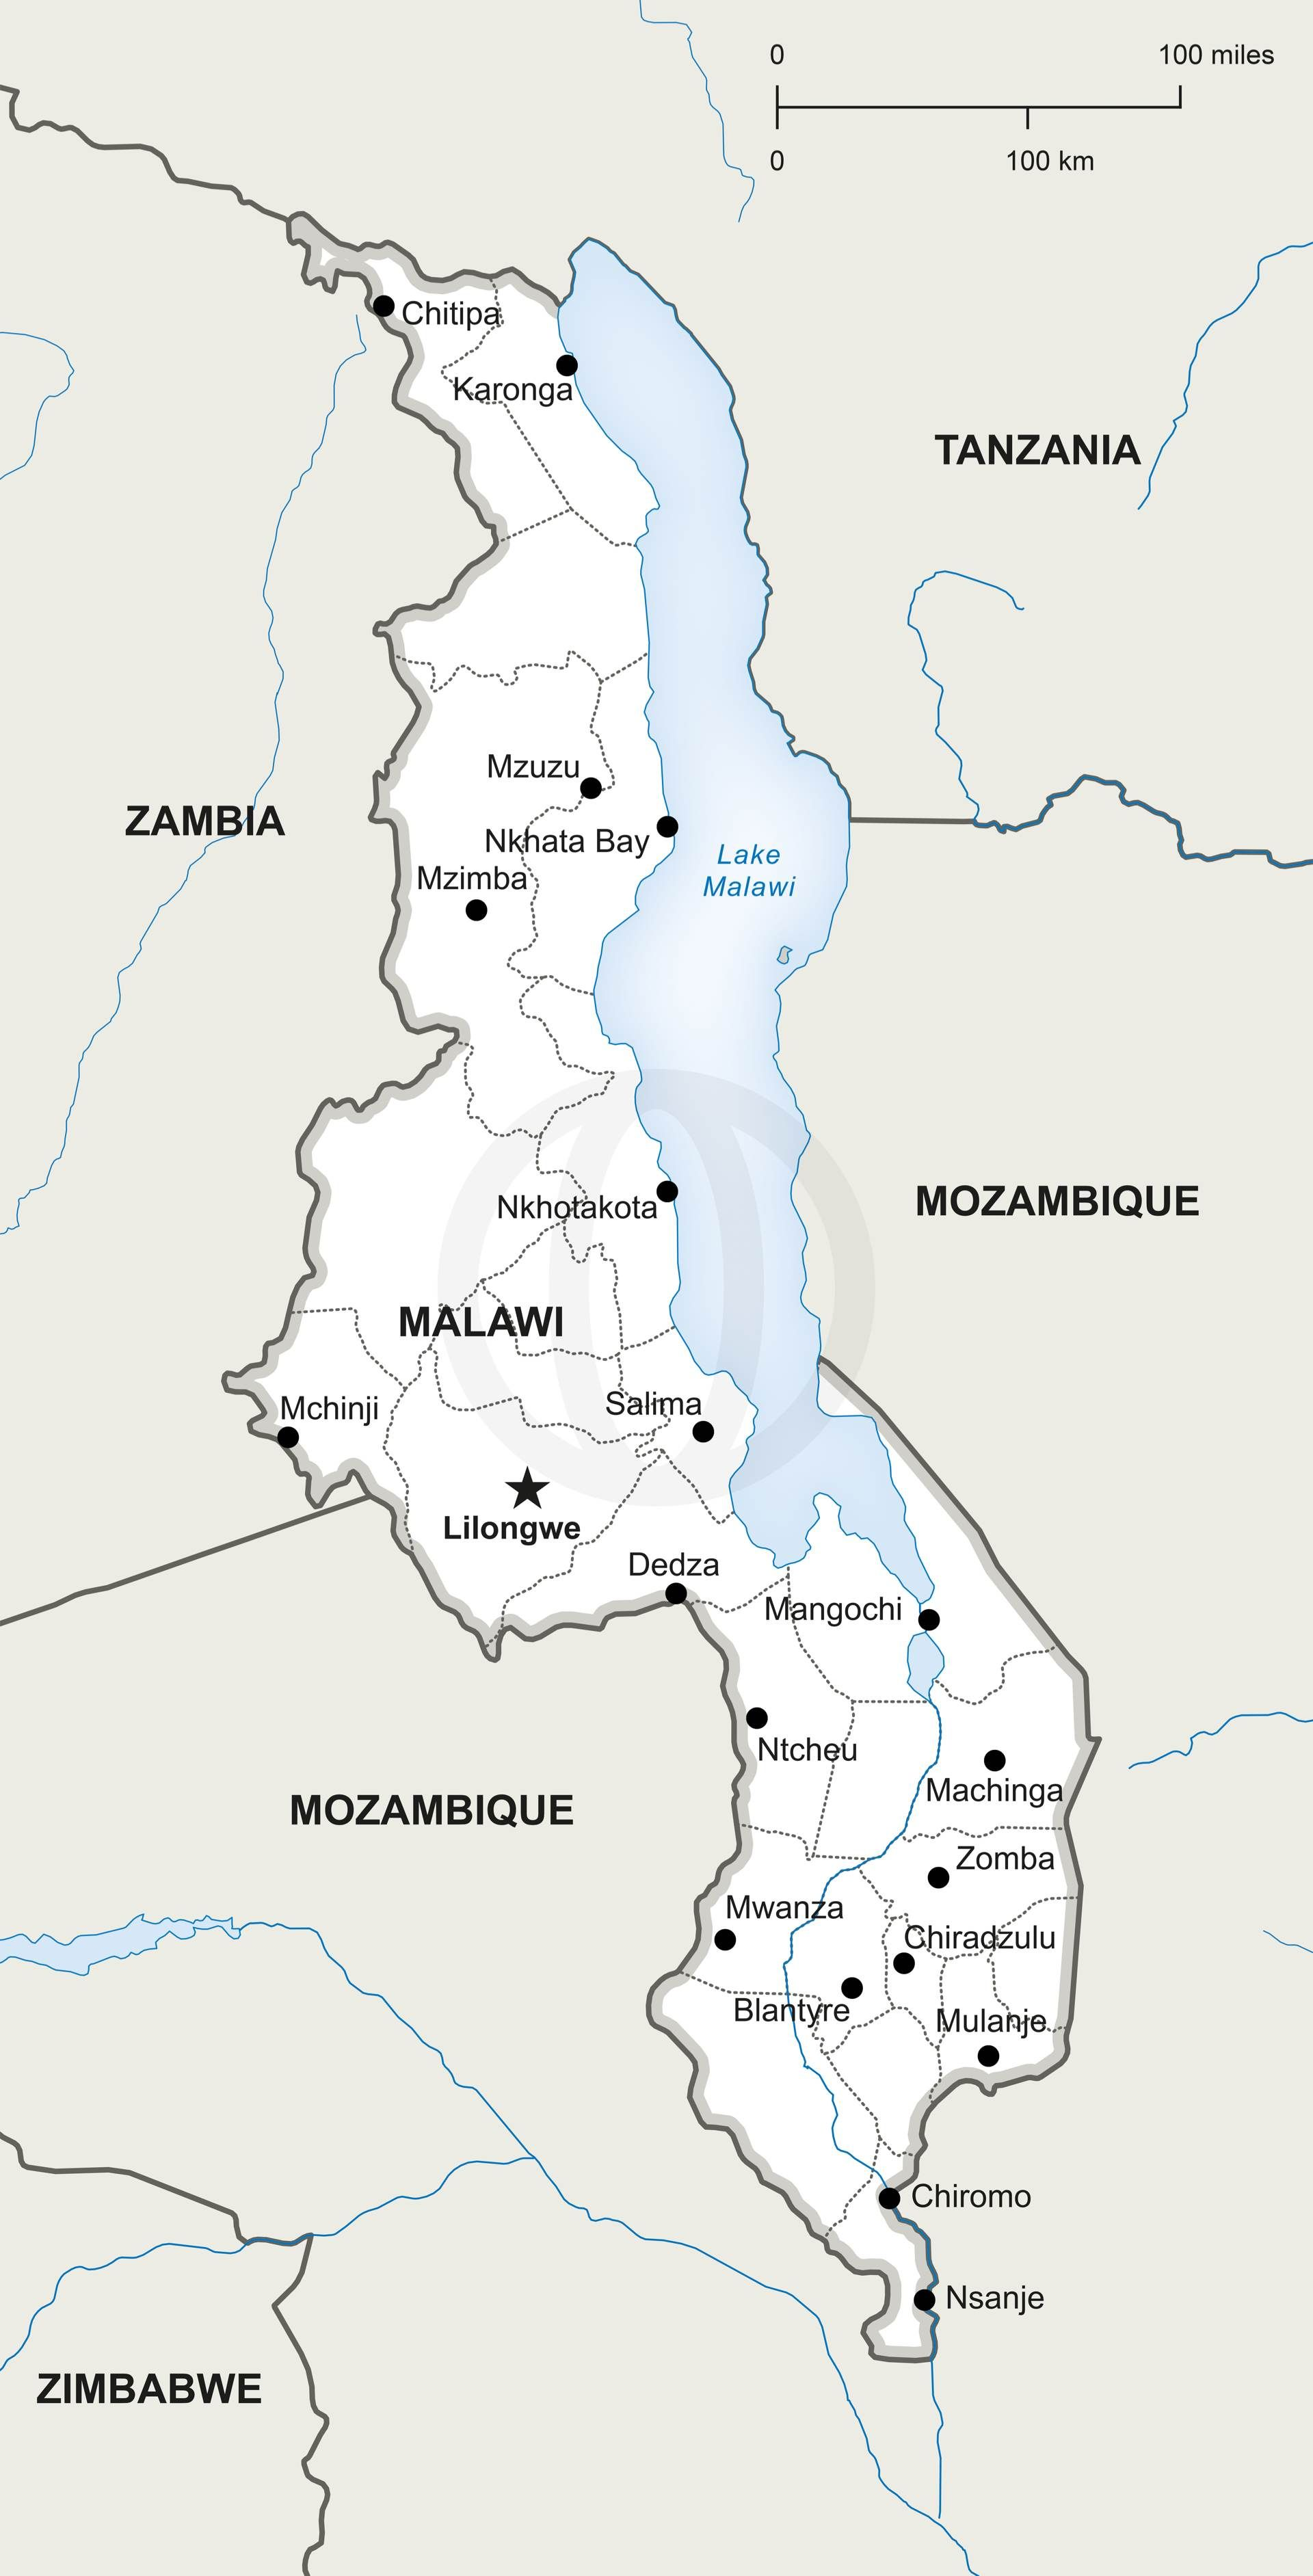 Map of Malawi political | Maps of Africa - continent ... Malawi Map on mozambique map, cameroon map, mauritius map, libya map, senegal map, kenya map, democratic republic congo map, nigeria map, kiribati map, ethiopia map, jamaica map, algeria map, liberia map, mali map, tanzania map, madagascar map, gambia map, morocco map, niger map, tunisia map, rwanda map, macedonia map, sudan map, togo map, egypt map, ghana map, lesotho map, swaziland on map, zambia map, uganda map, zimbabwe map, africa map, namibia map, angola map, sierra leone map,